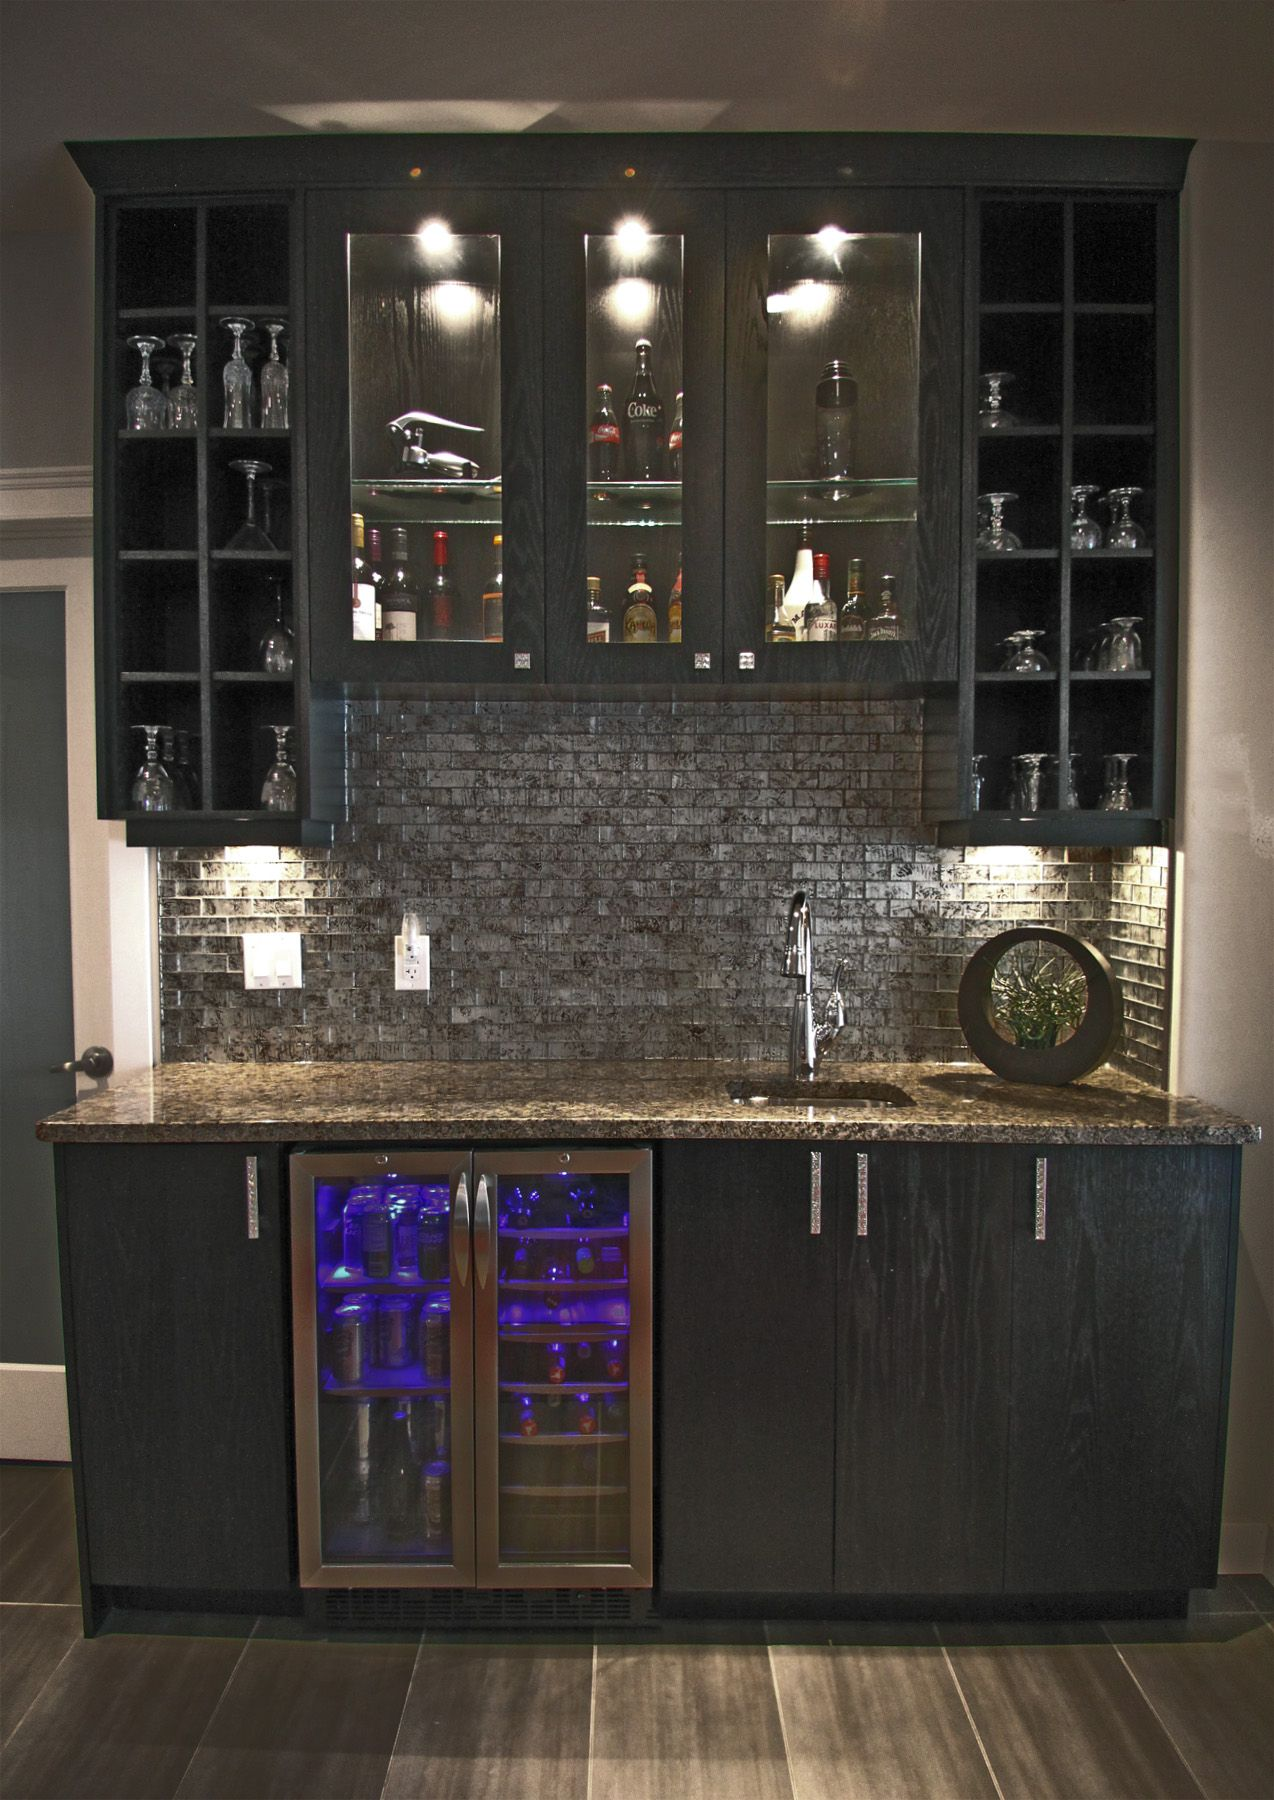 Home wet bar design w glass backsplash kitchen designs for Kitchen designs by delta